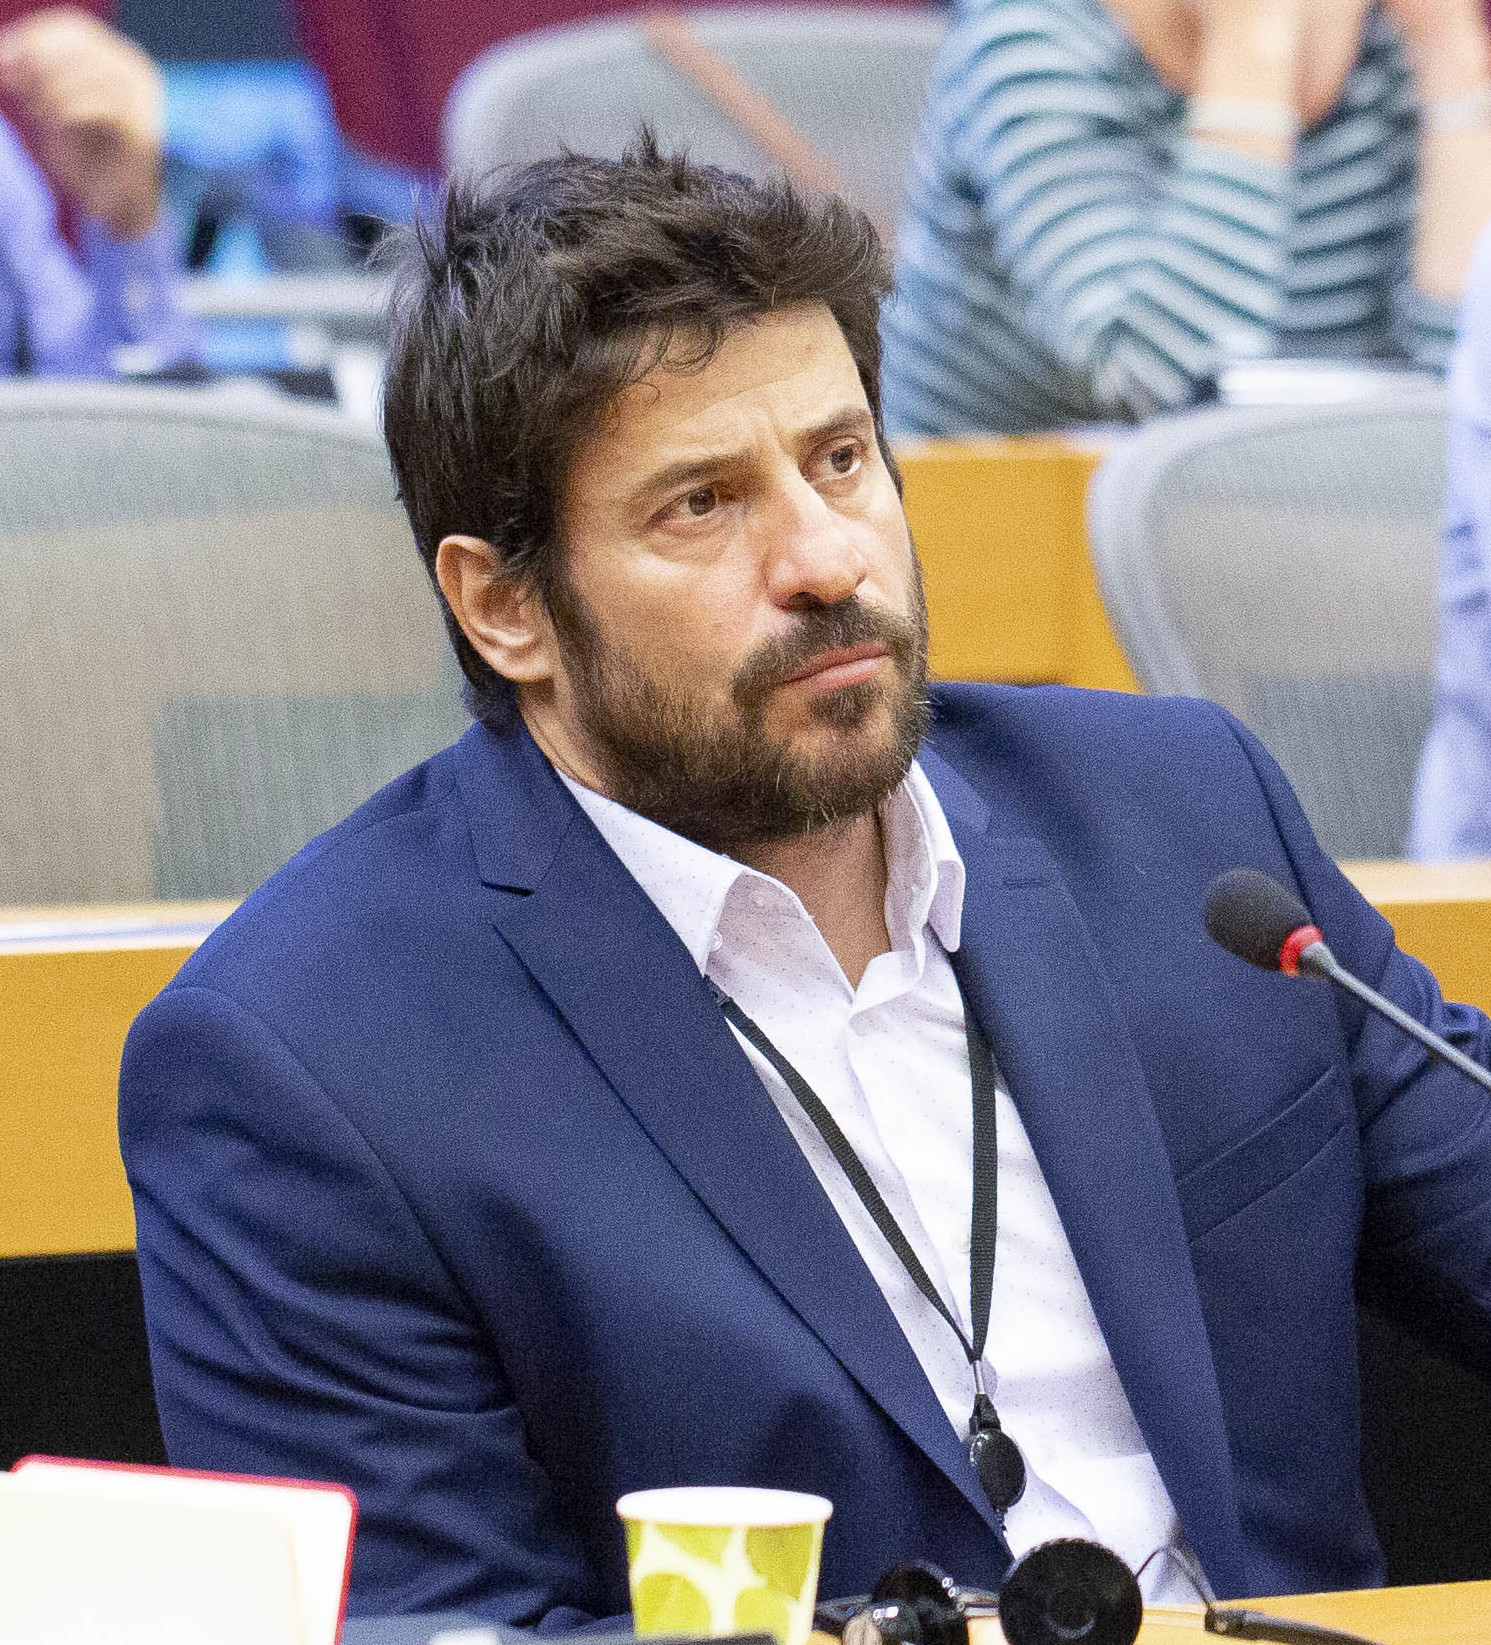 Alexis Georgoulis Wikipedia Alexis georgoulis, mep is a member of vimeo, the home for high quality videos and the people who love them. wikipedia